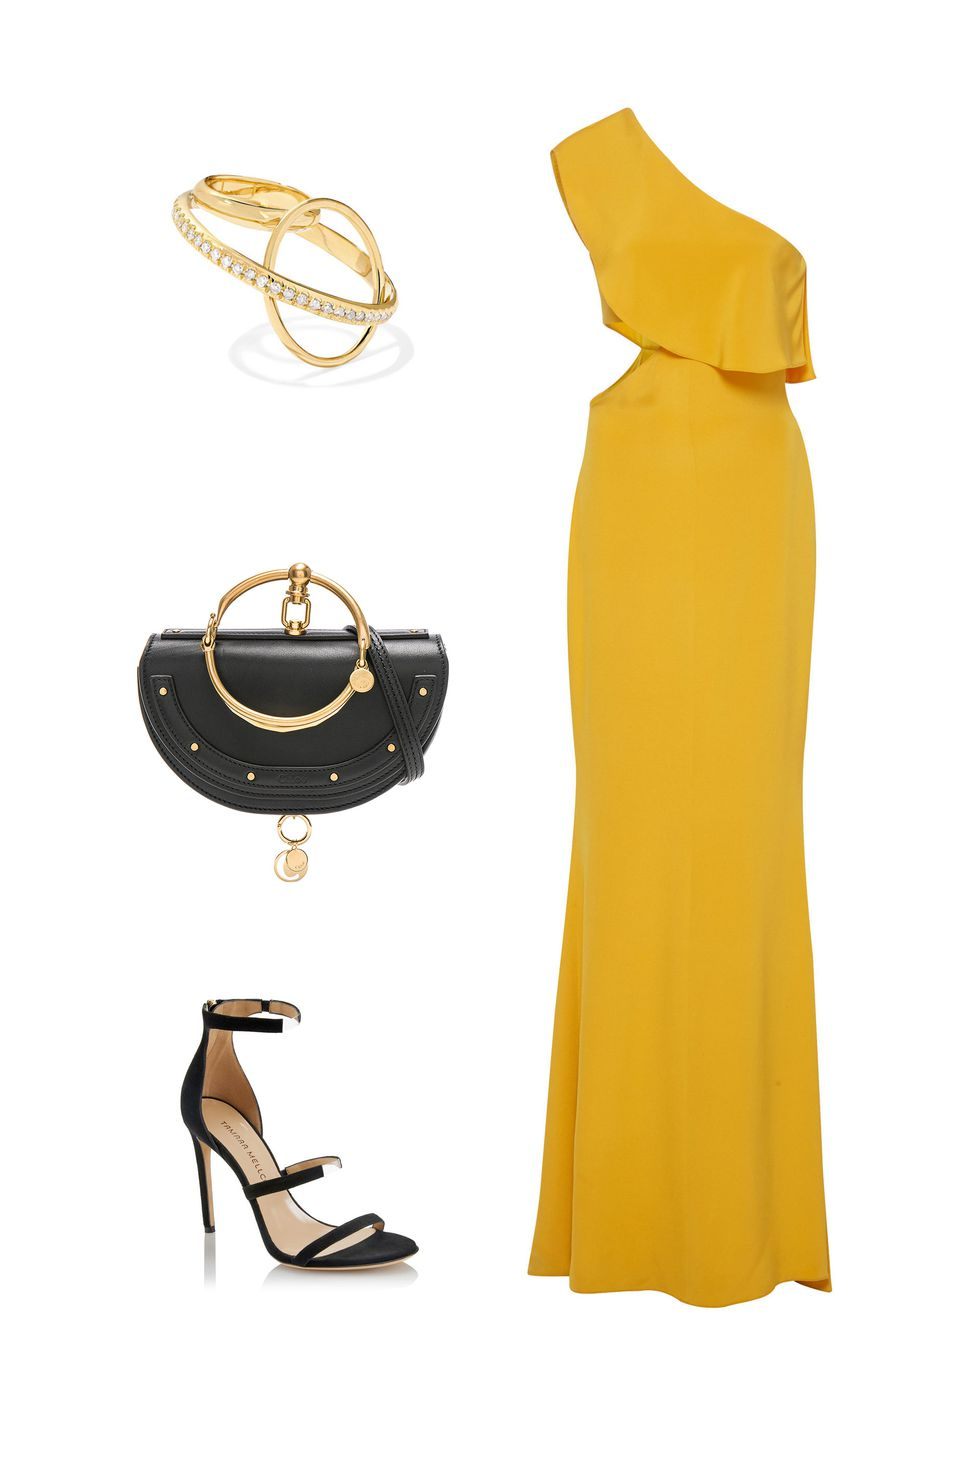 what-to-wear-for-a-fall-wedding-guest-outfit-autumn-yellow-dress-maxi-black-bag-clutch-black-shoe-sandalh-dinner.jpg